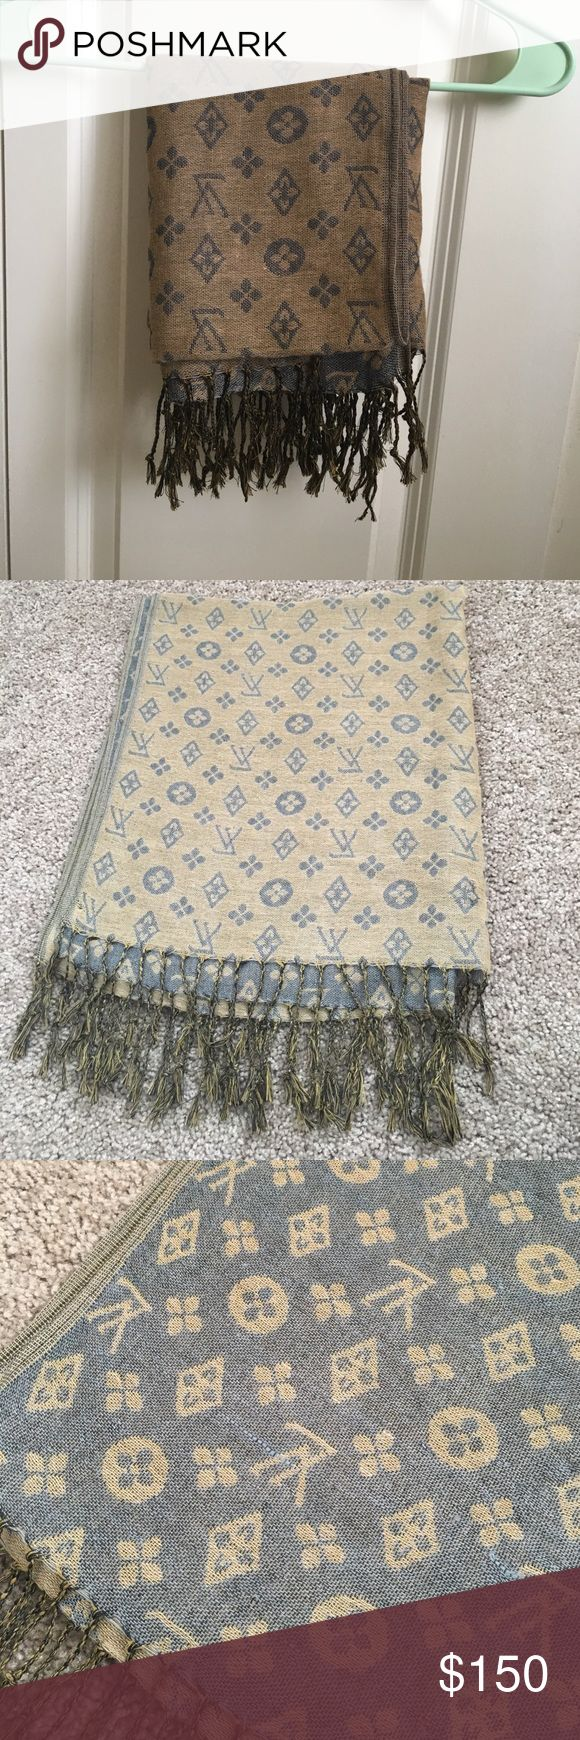 Real Louis Vuitton scarf Tan and grey Louis Vuitton scarf. Worn more than other 2 listed. Good condition. Louis Vuitton Accessories Scarves & Wraps